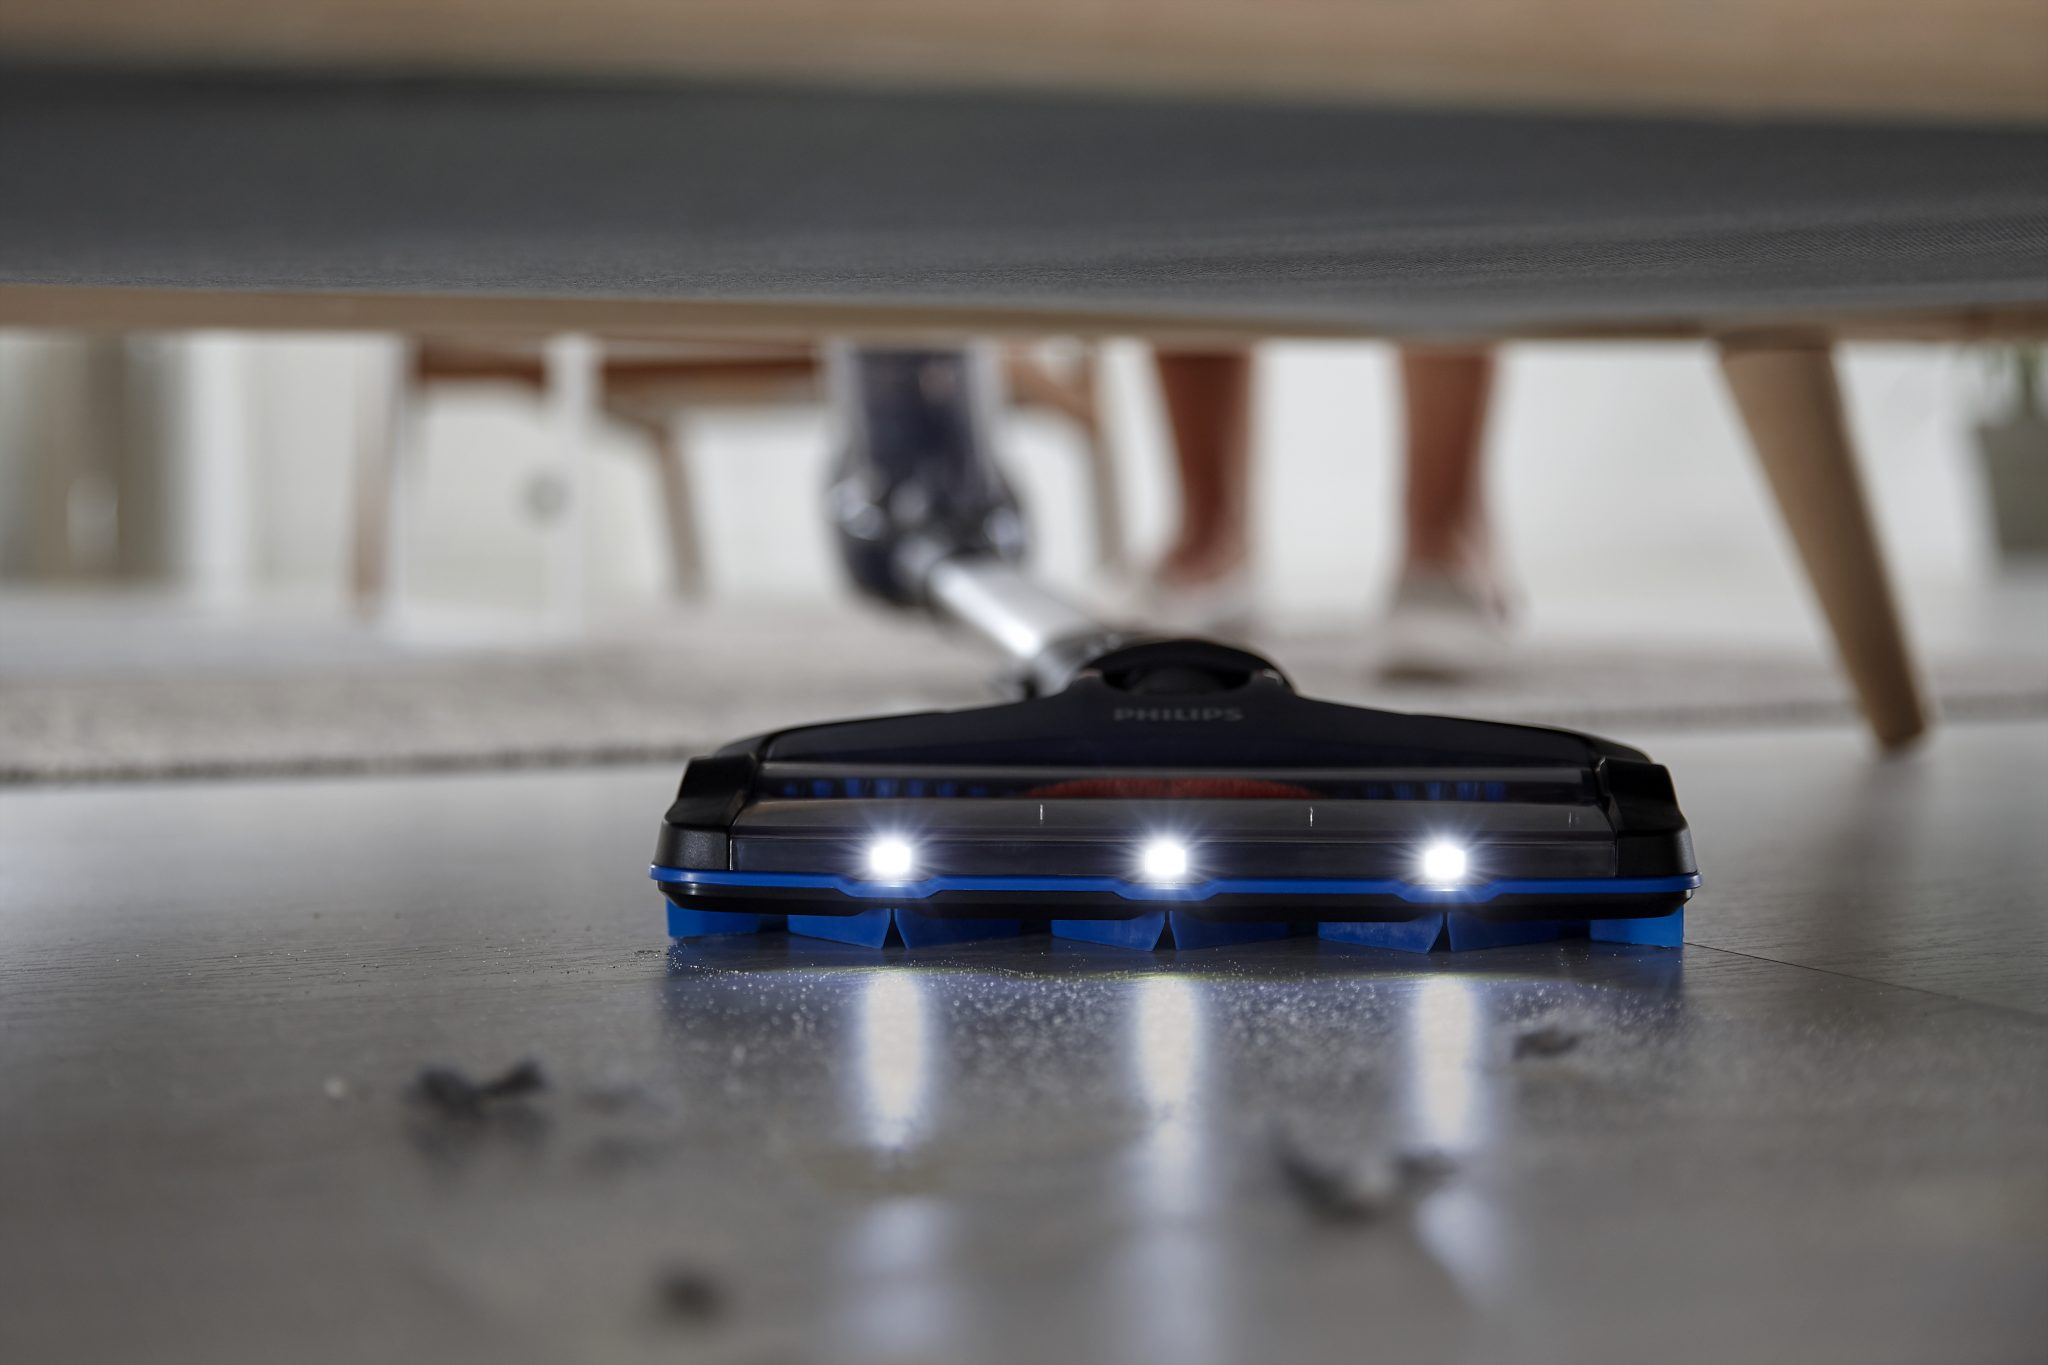 Philips Speedpro: Under the table